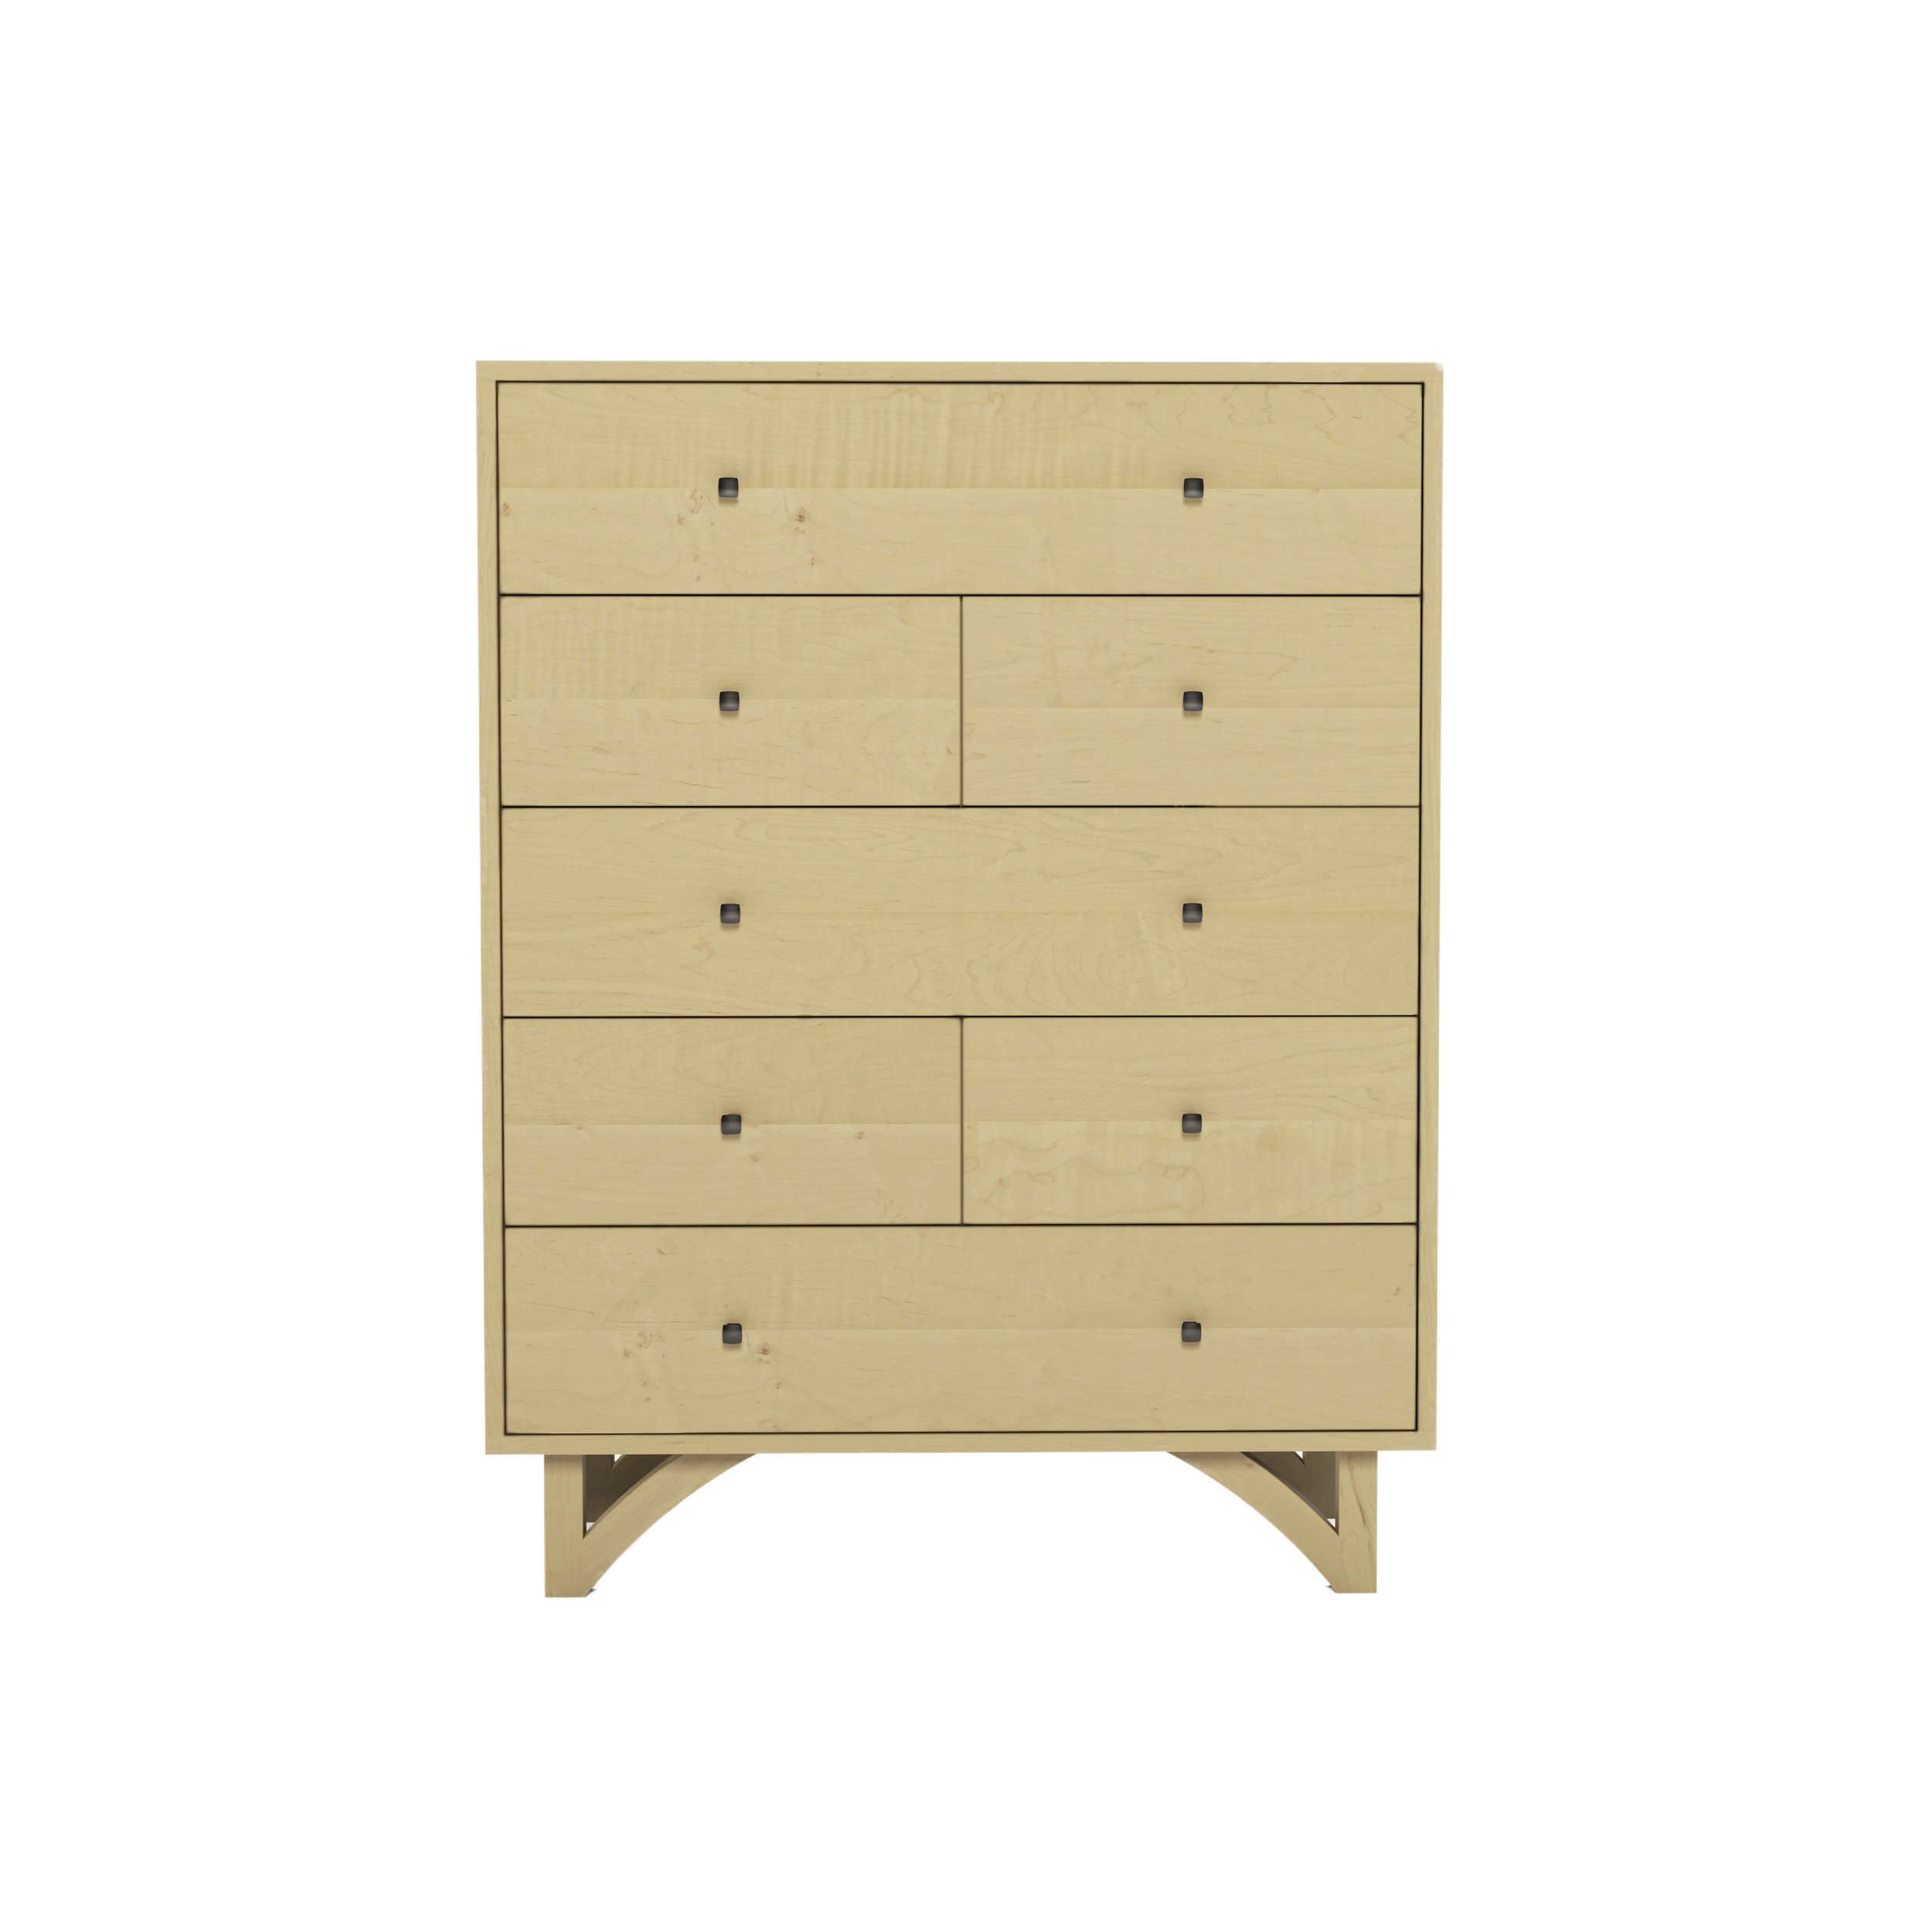 Series 454 Tall Dresser With Seven Drawers At 36″ In Width